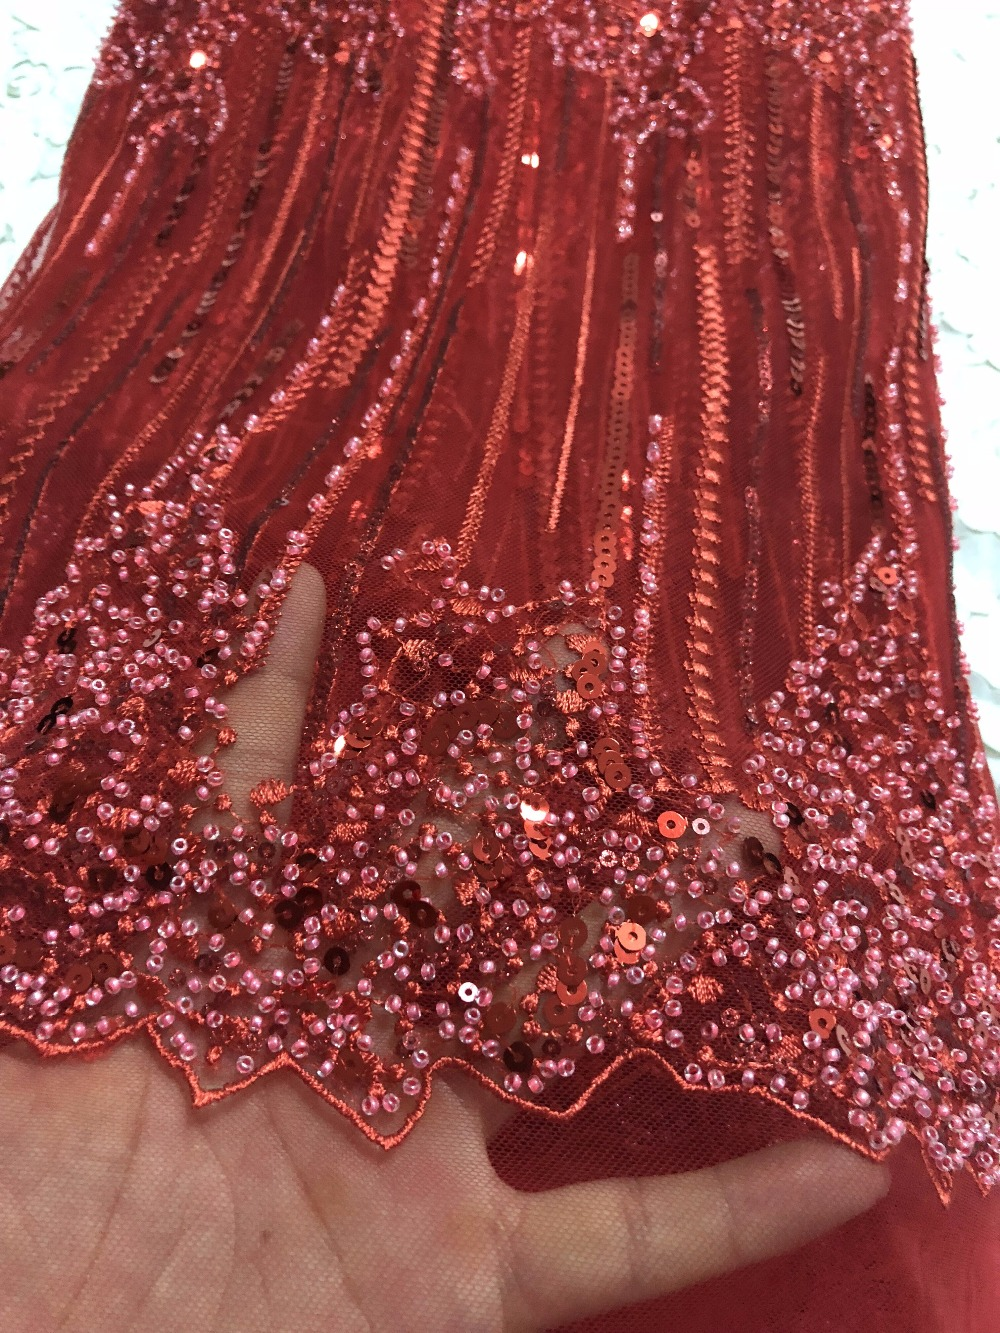 Red Color New Design African Lace Fabrics High Quality French Lace Fabric For Party Dress Nigerian Beaded Lace Fabric ZD003